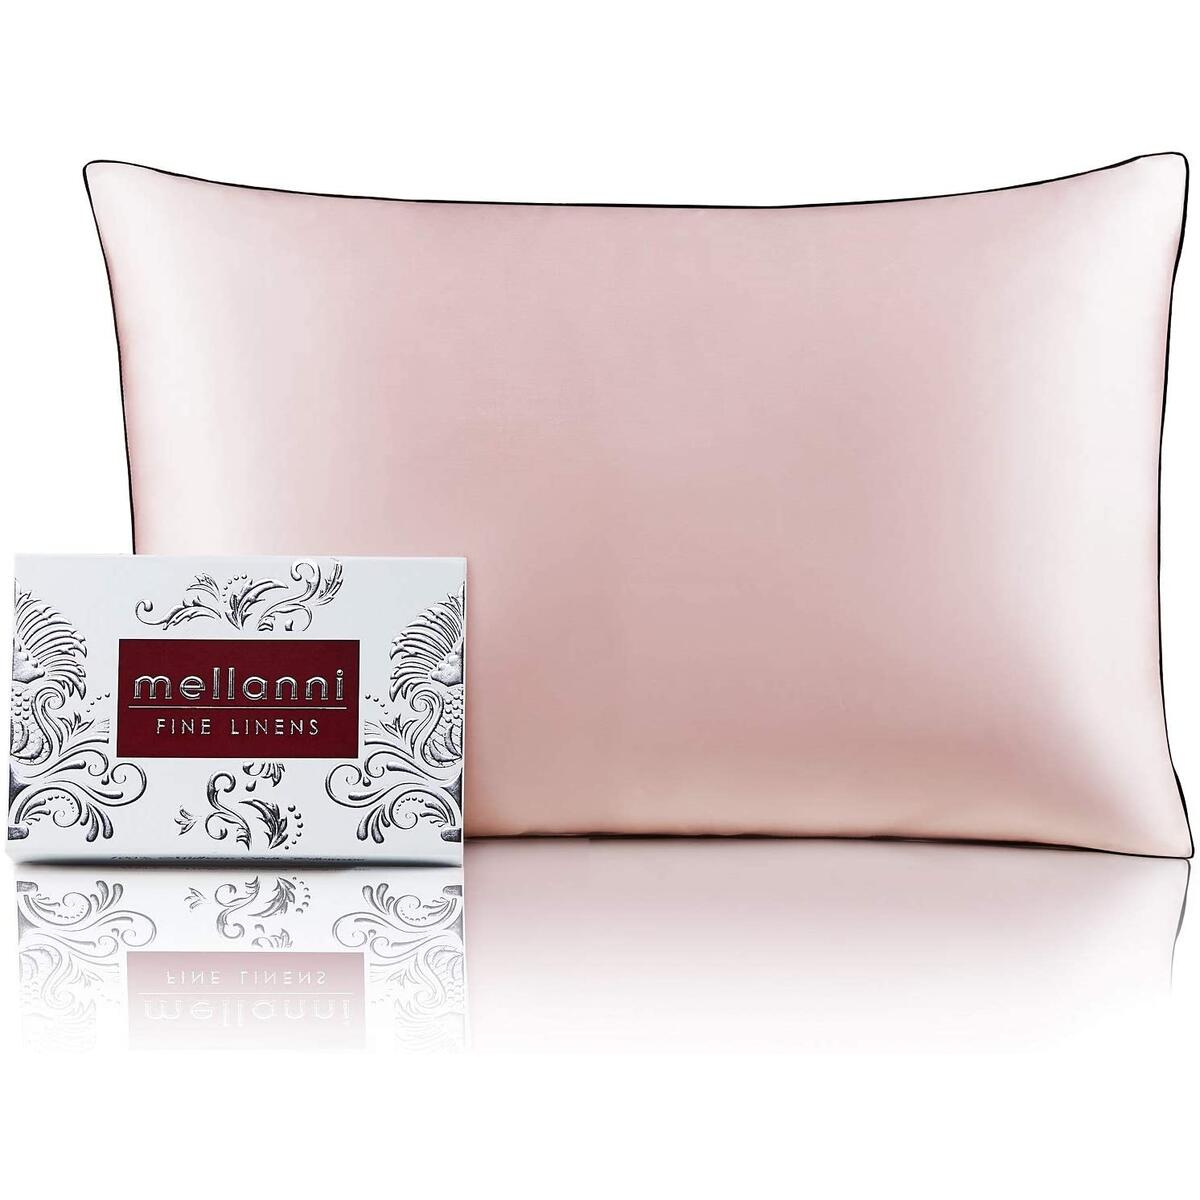 Mellanni Silk Pillowcase for Hair and Skin - Both Sides 100% Pure Natural Mulberry Silk - 19 Momme - Hidden Zipper Closure Pillow Case - (Standard 20